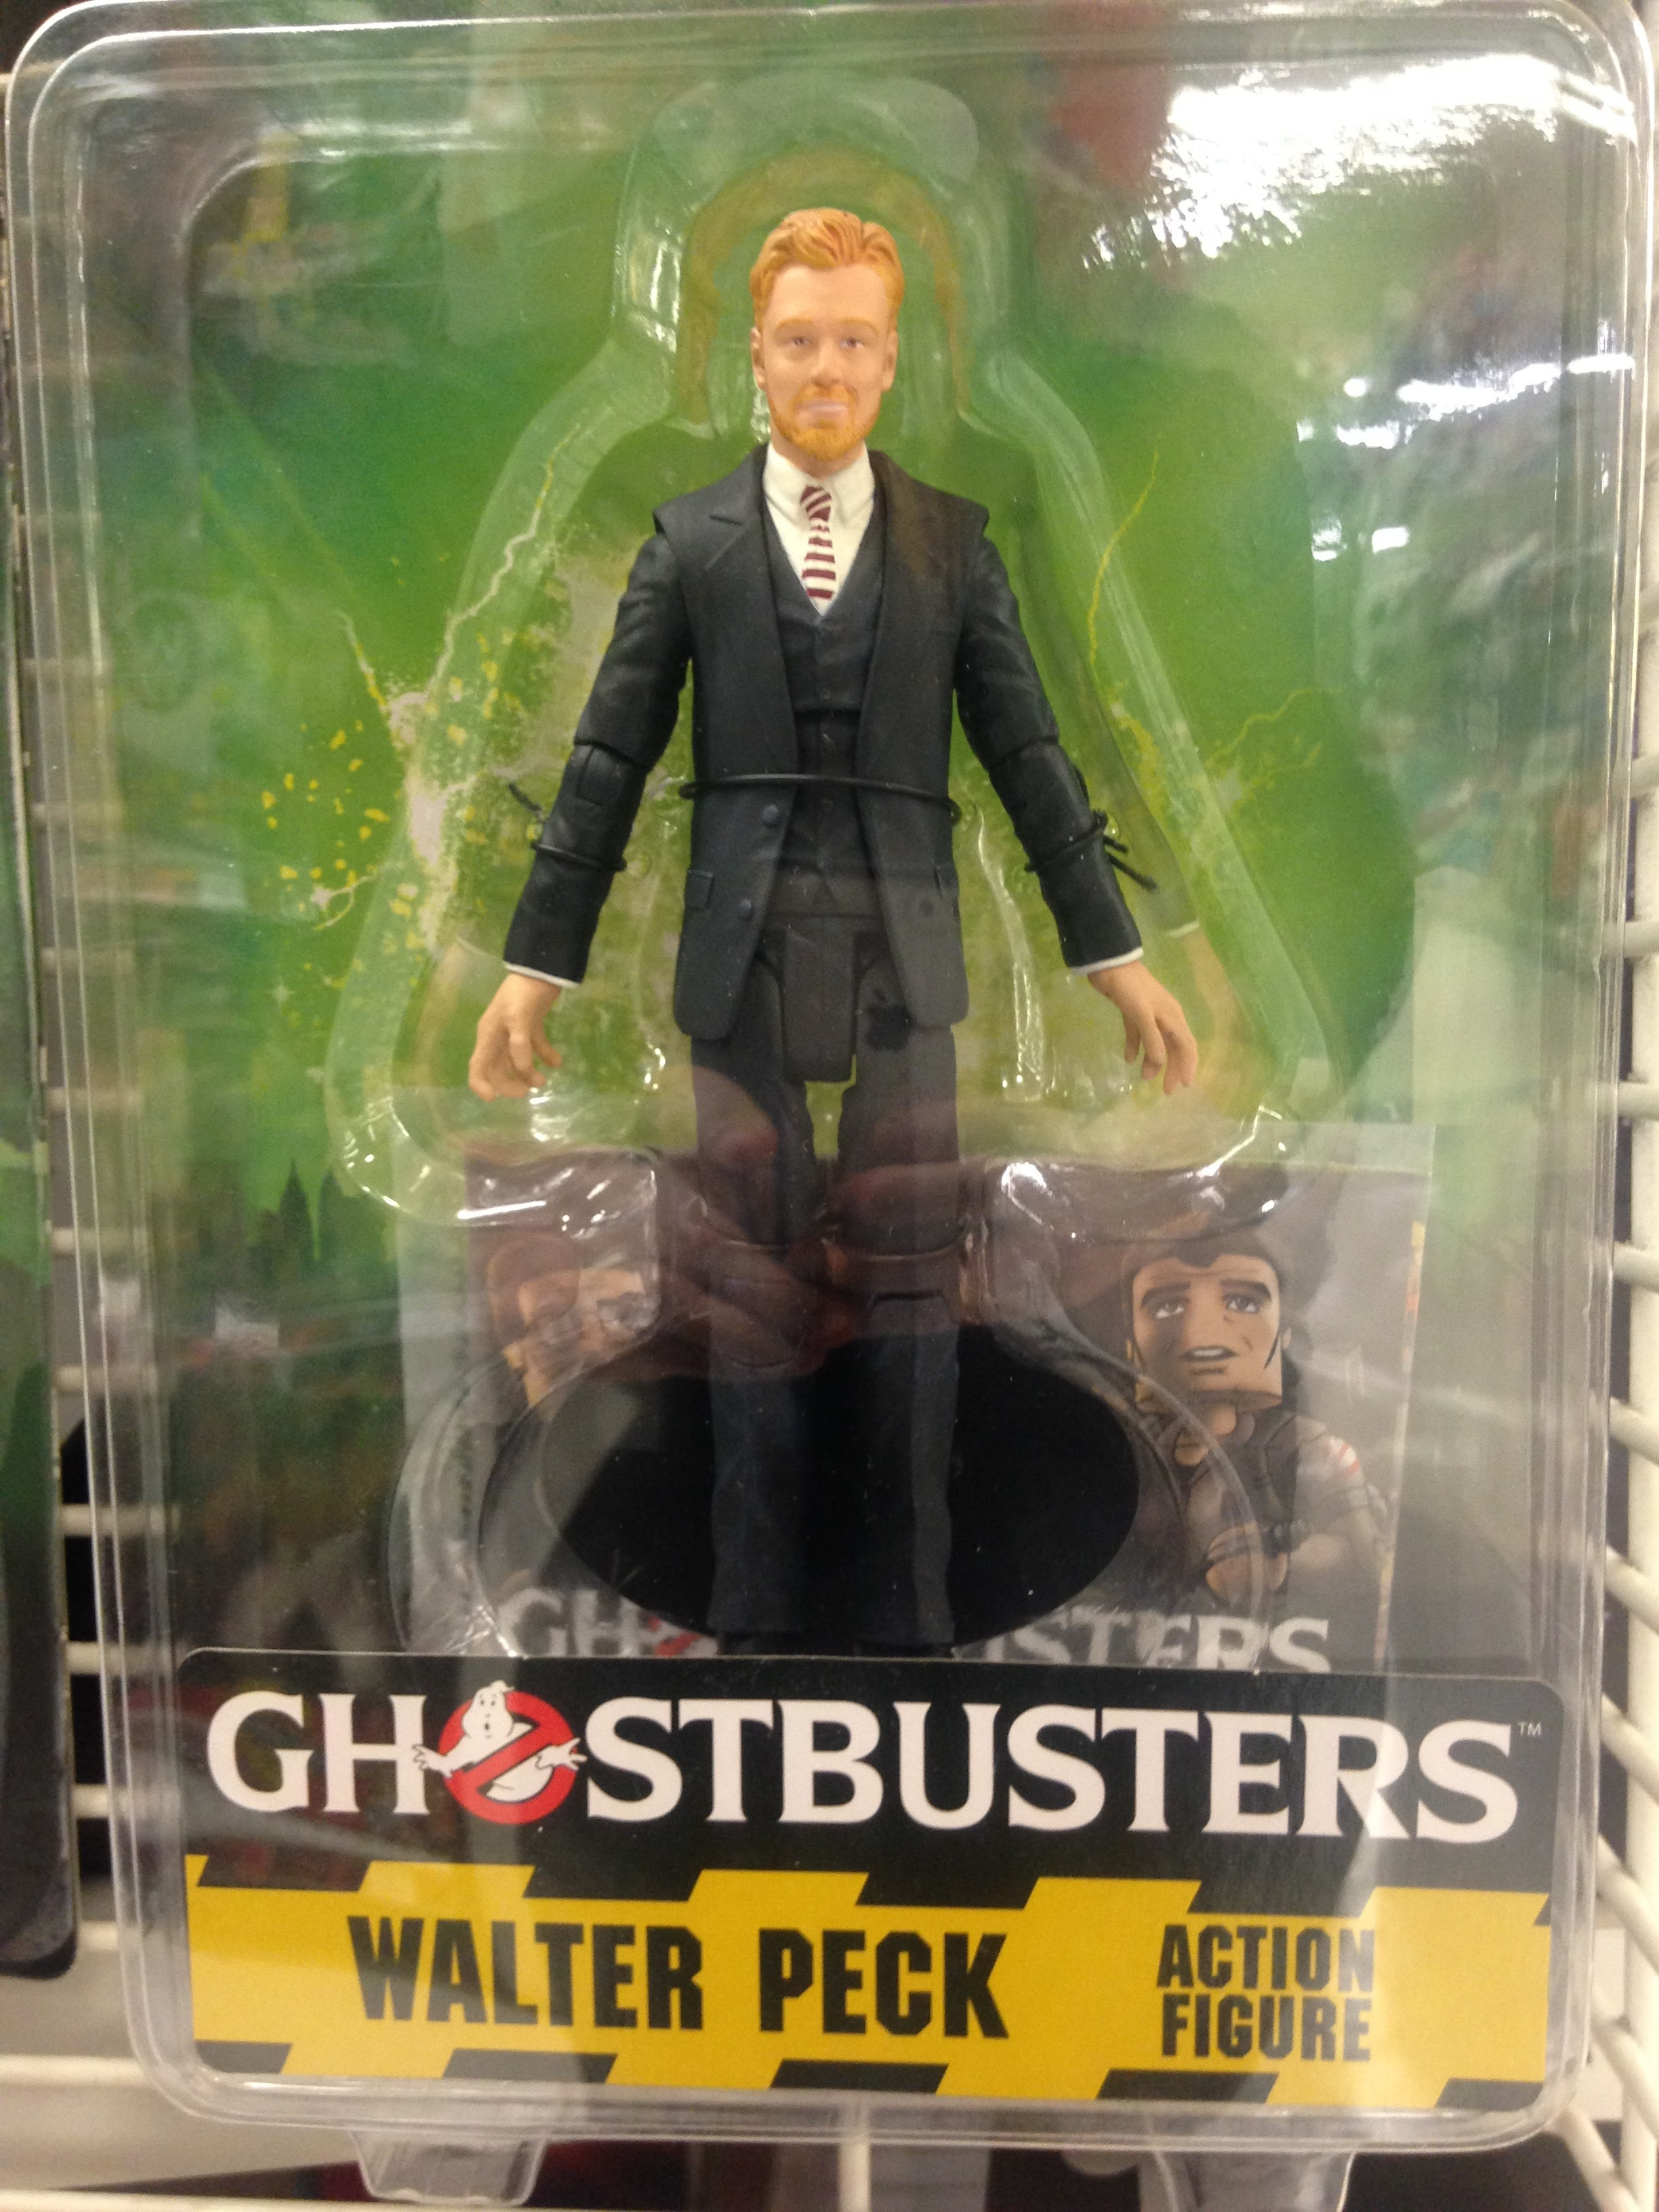 Now we have Dickless to go with the rest of our Ghostbusters figures!